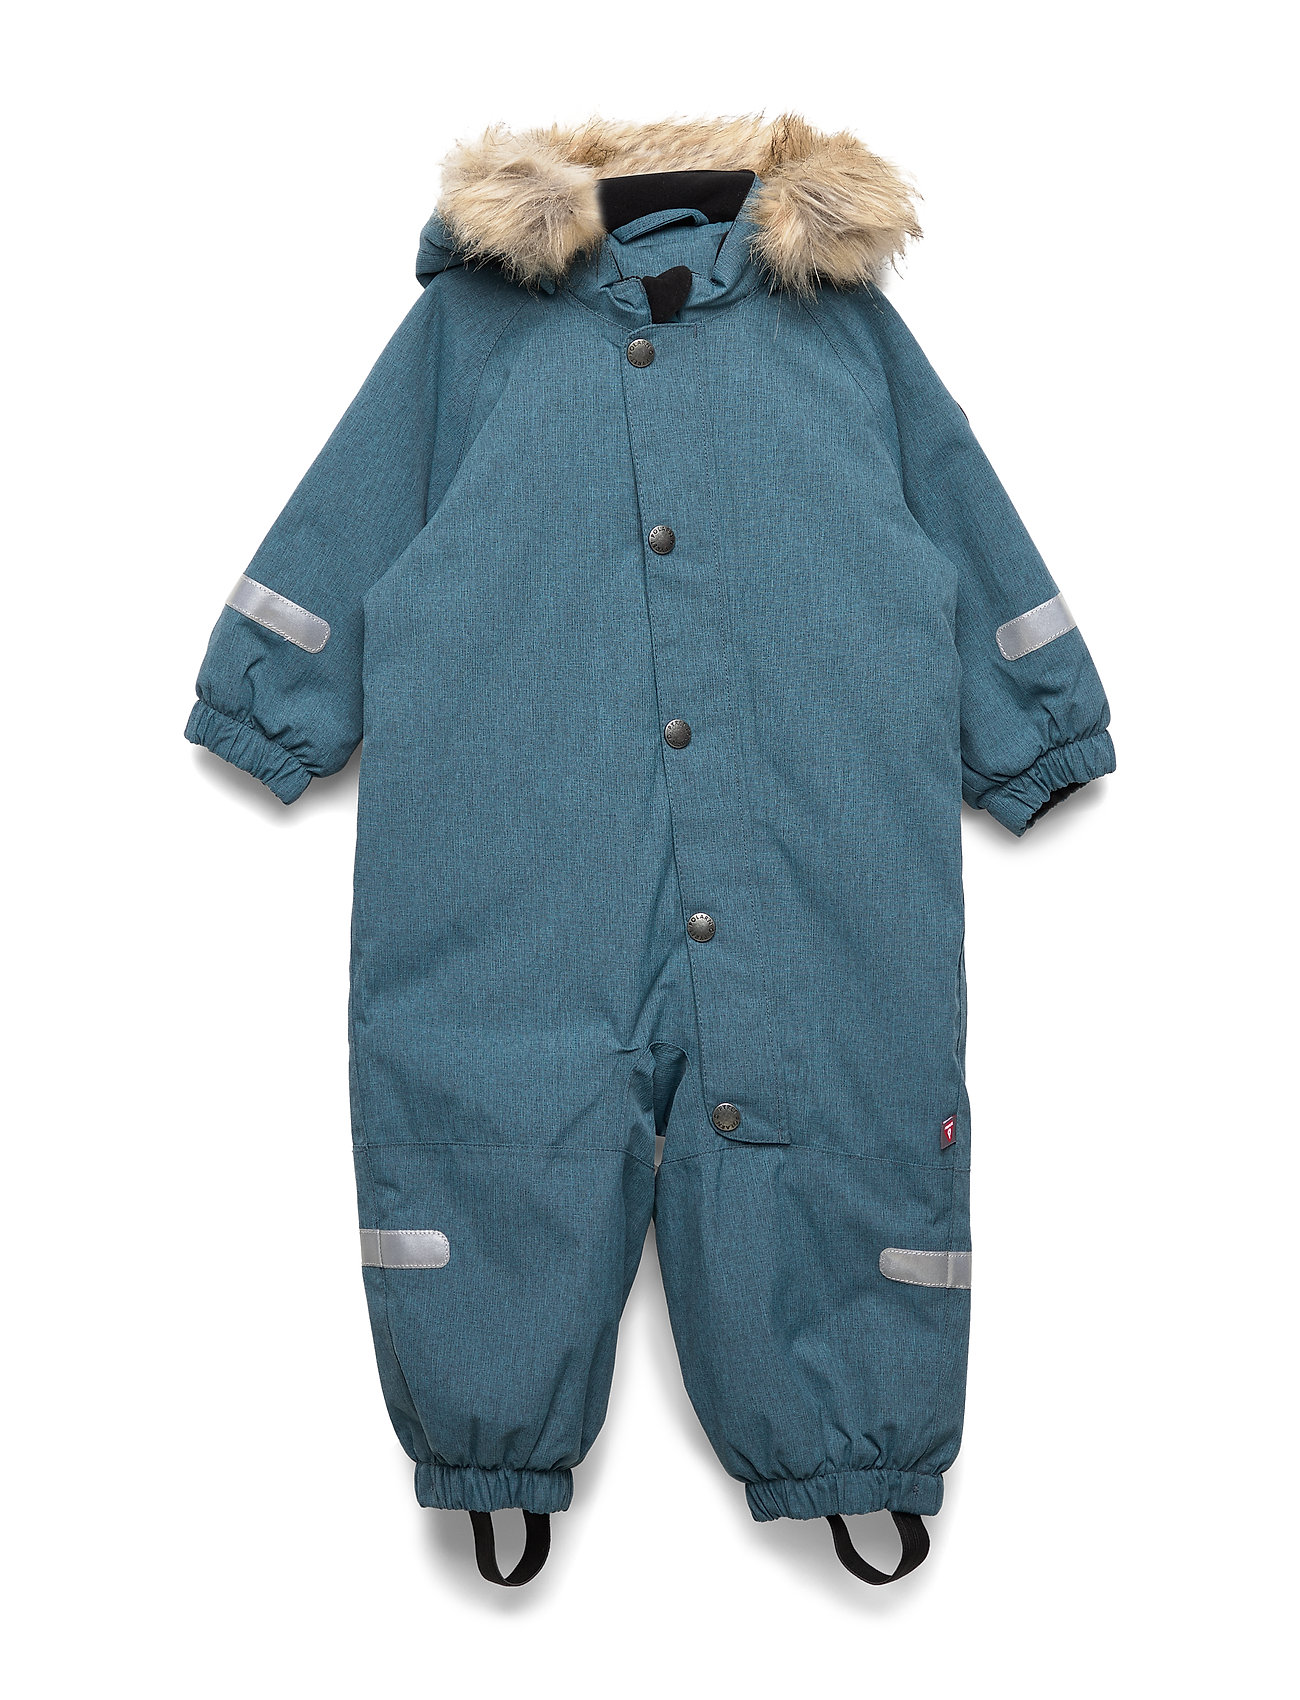 Polarn O. Pyret Overall Solid Baby - STORM BLUE